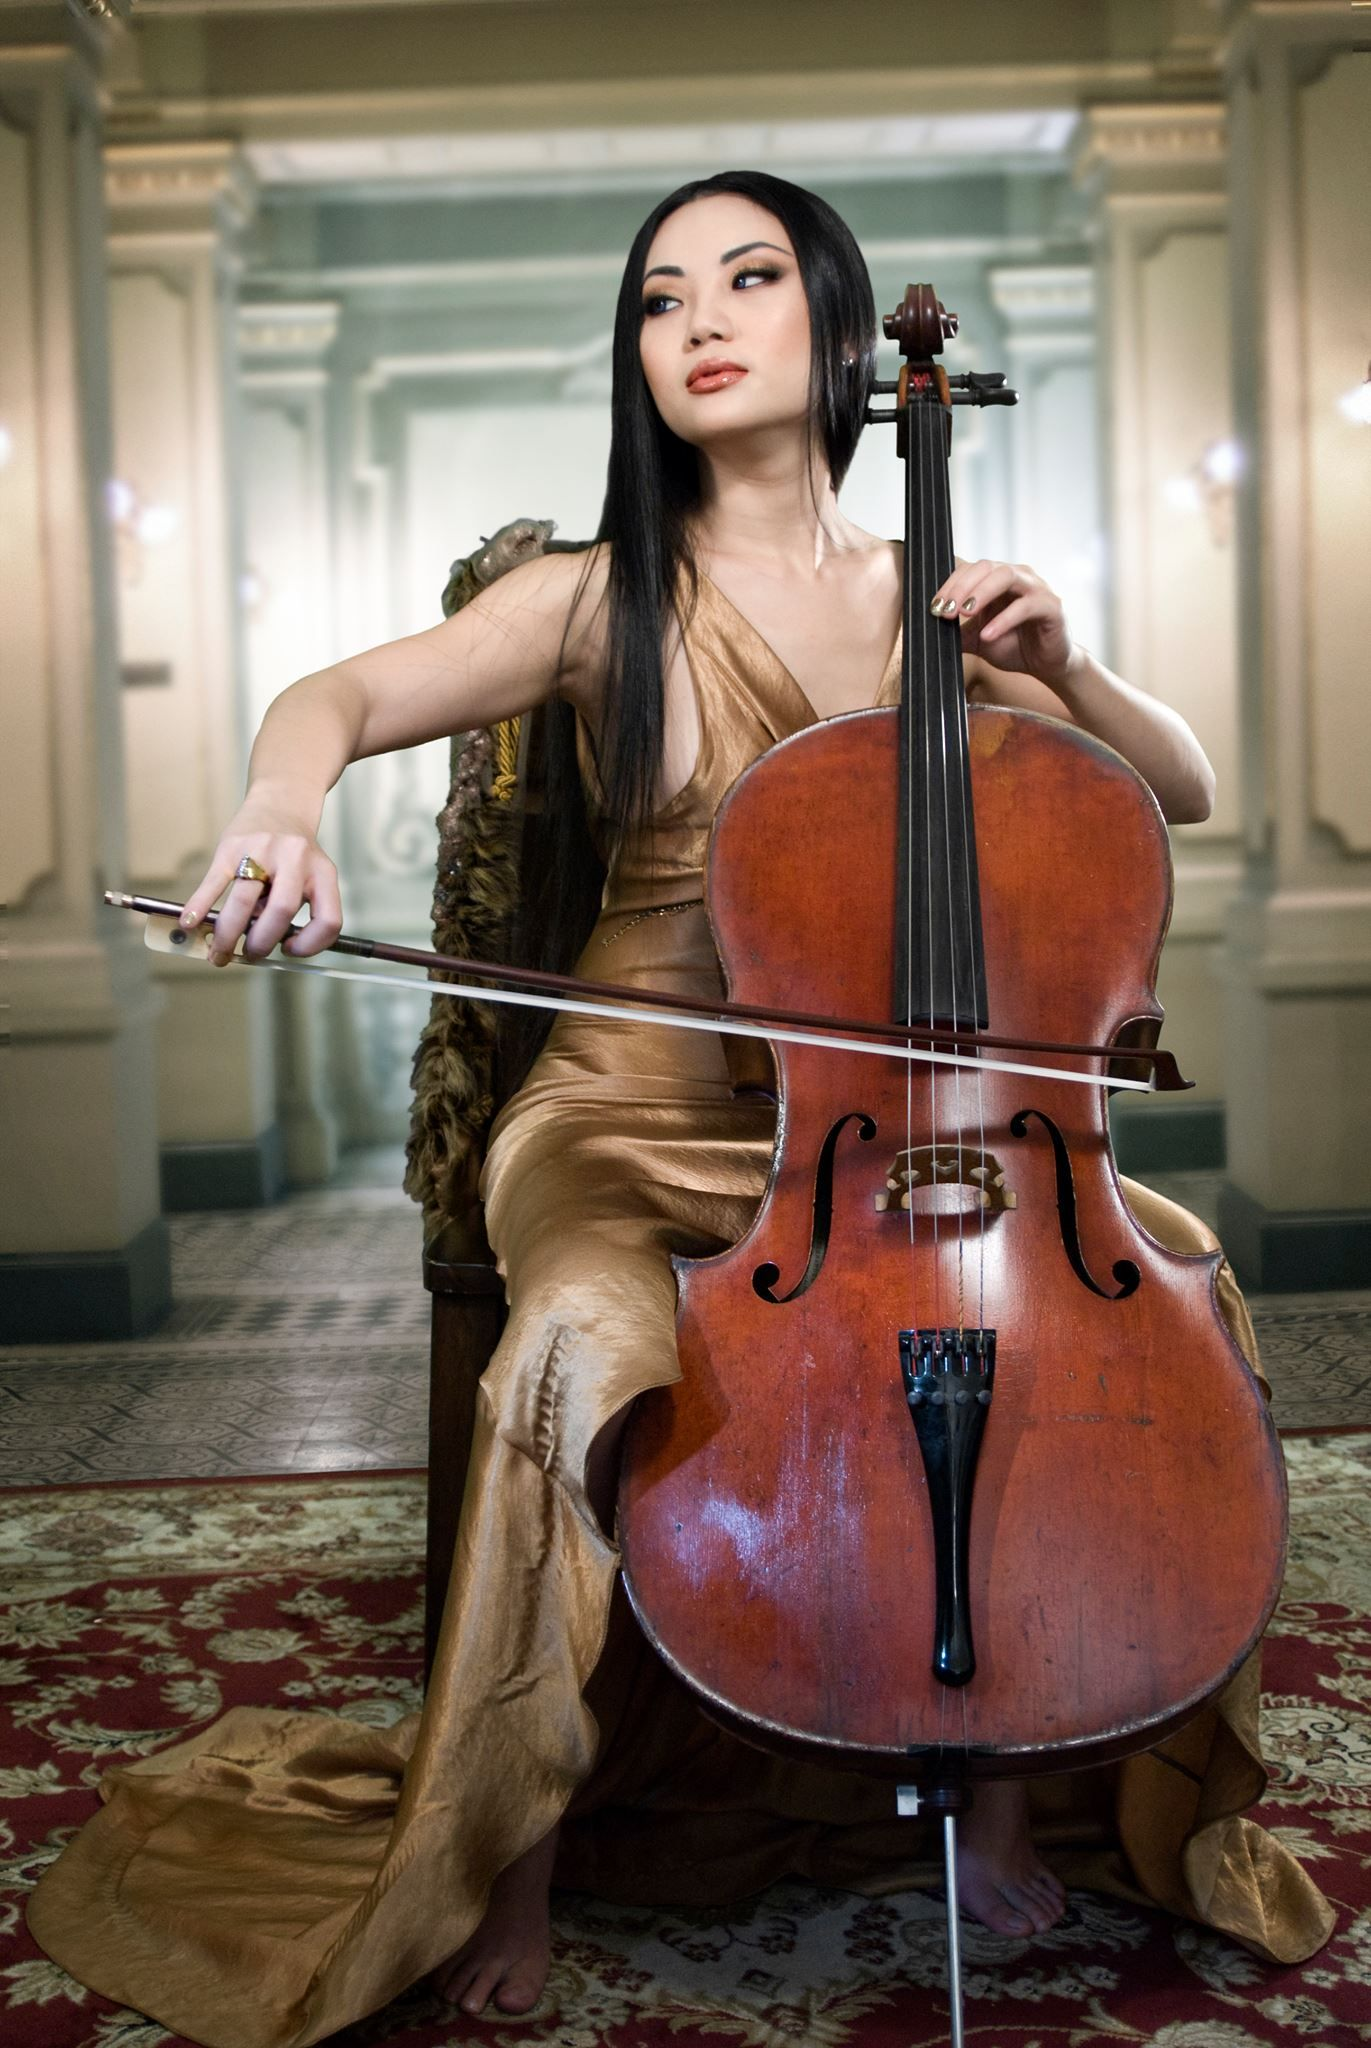 Tina Guo Strings Kolstein Music Cello Cello Music Musician Photography